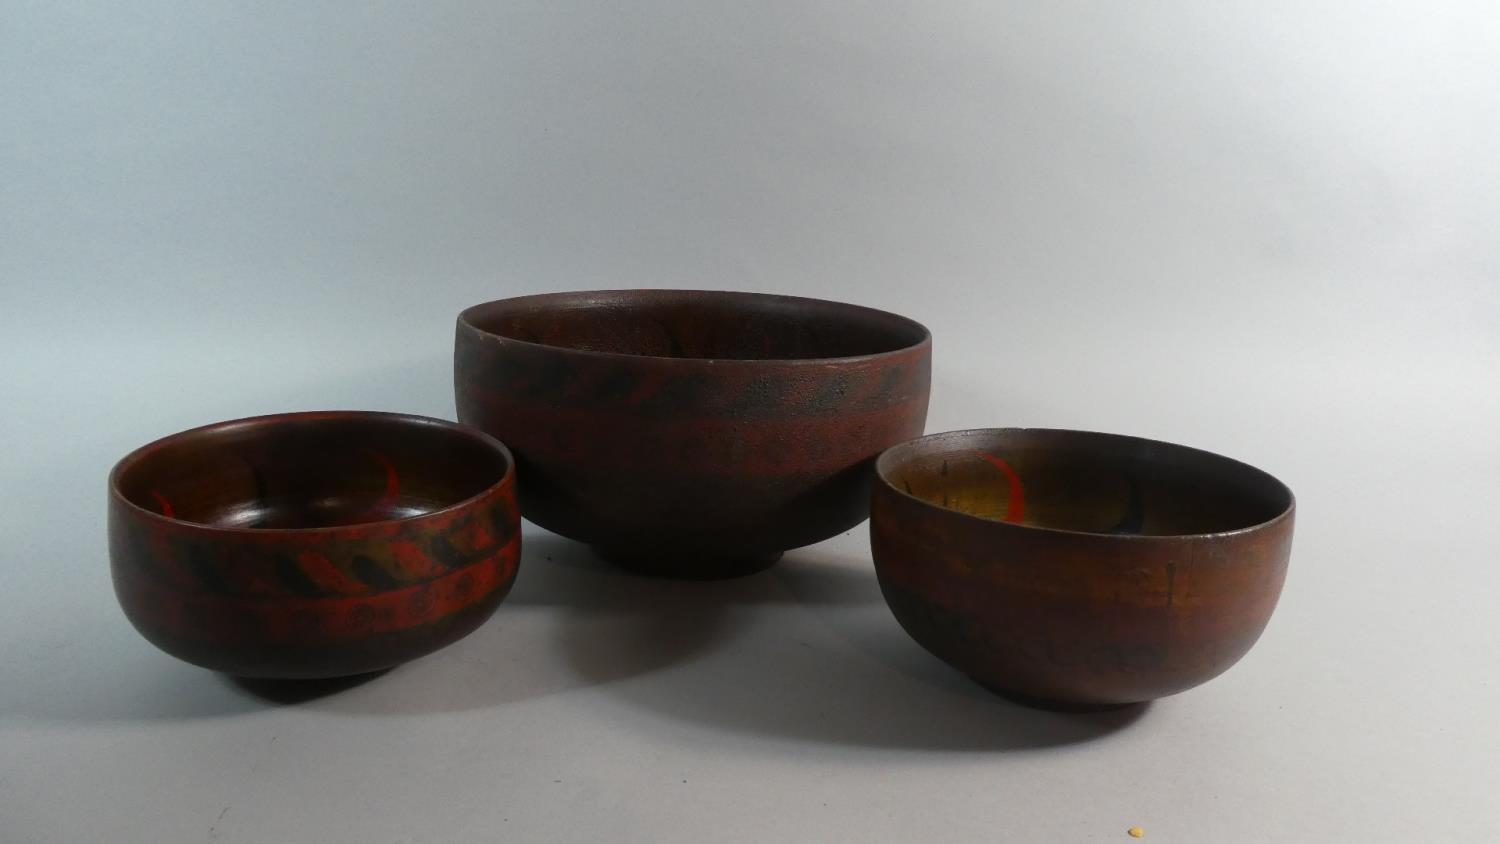 A Collection of Three Early 20th Century Indonesian Wooden Bowls with Original Polychrome Painted